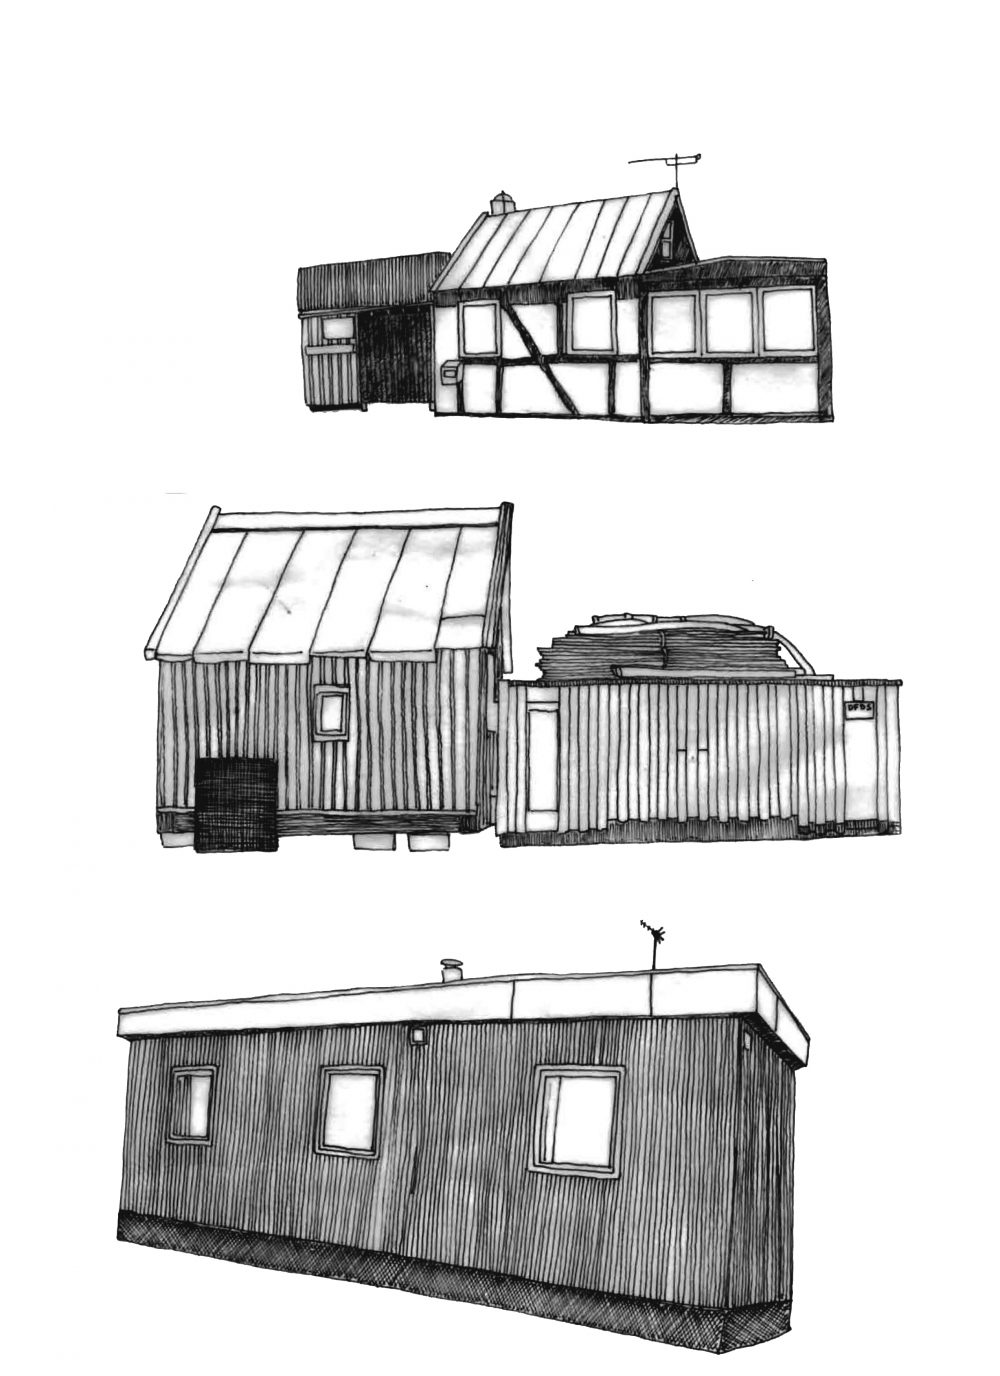 nordhavn_various-houses